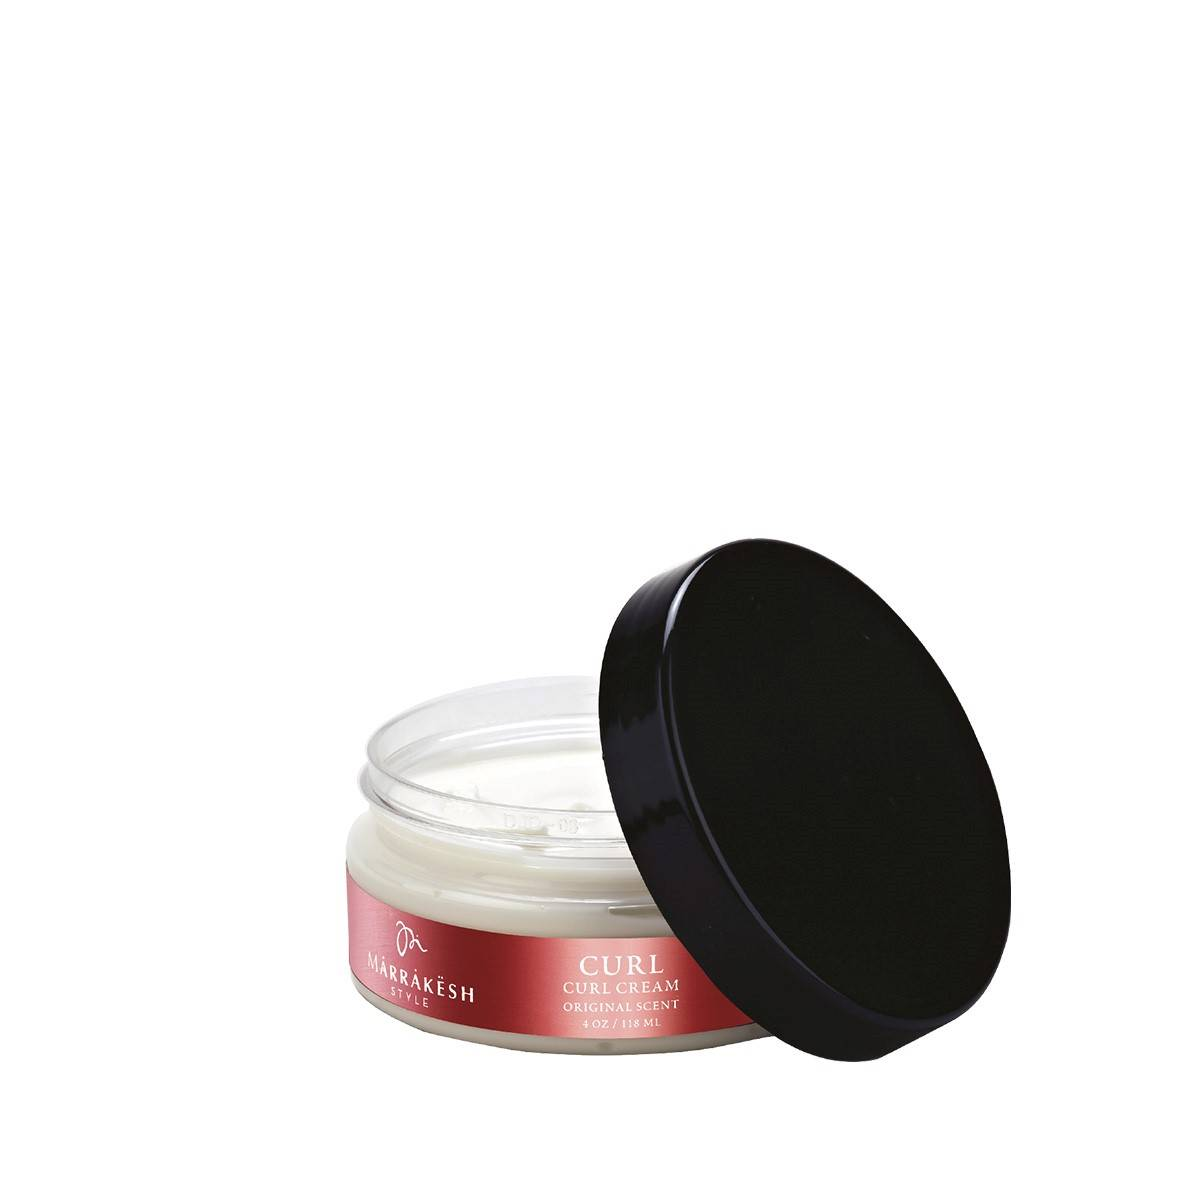 Curl Cream 118ml Marrakesh Curl